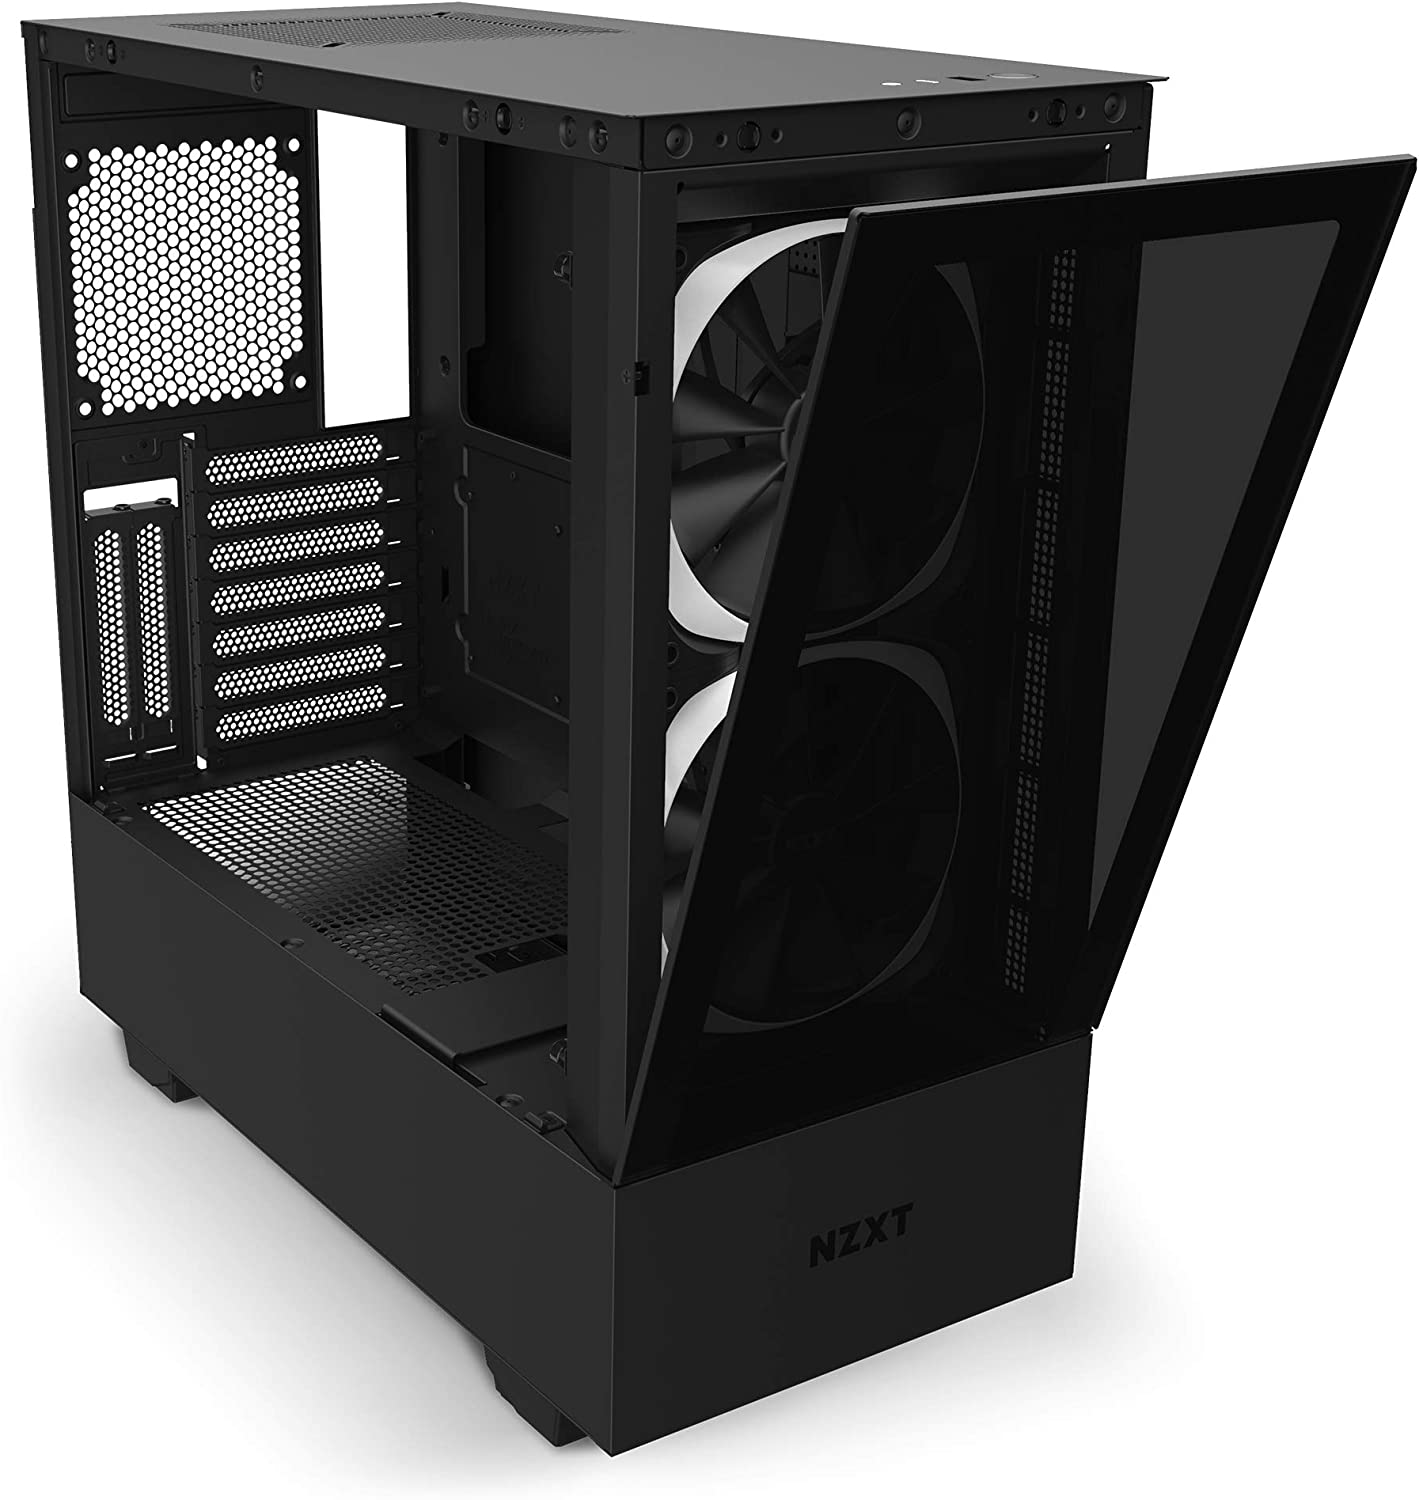 Amazon Com Nzxt H510 Elite Premium Mid Tower Atx Case Pc Gaming Case Dual Tempered Glass Panel Front I O Usb Type C Port Vertical Gpu Mount Integrated Rgb Lighting Water Cooling